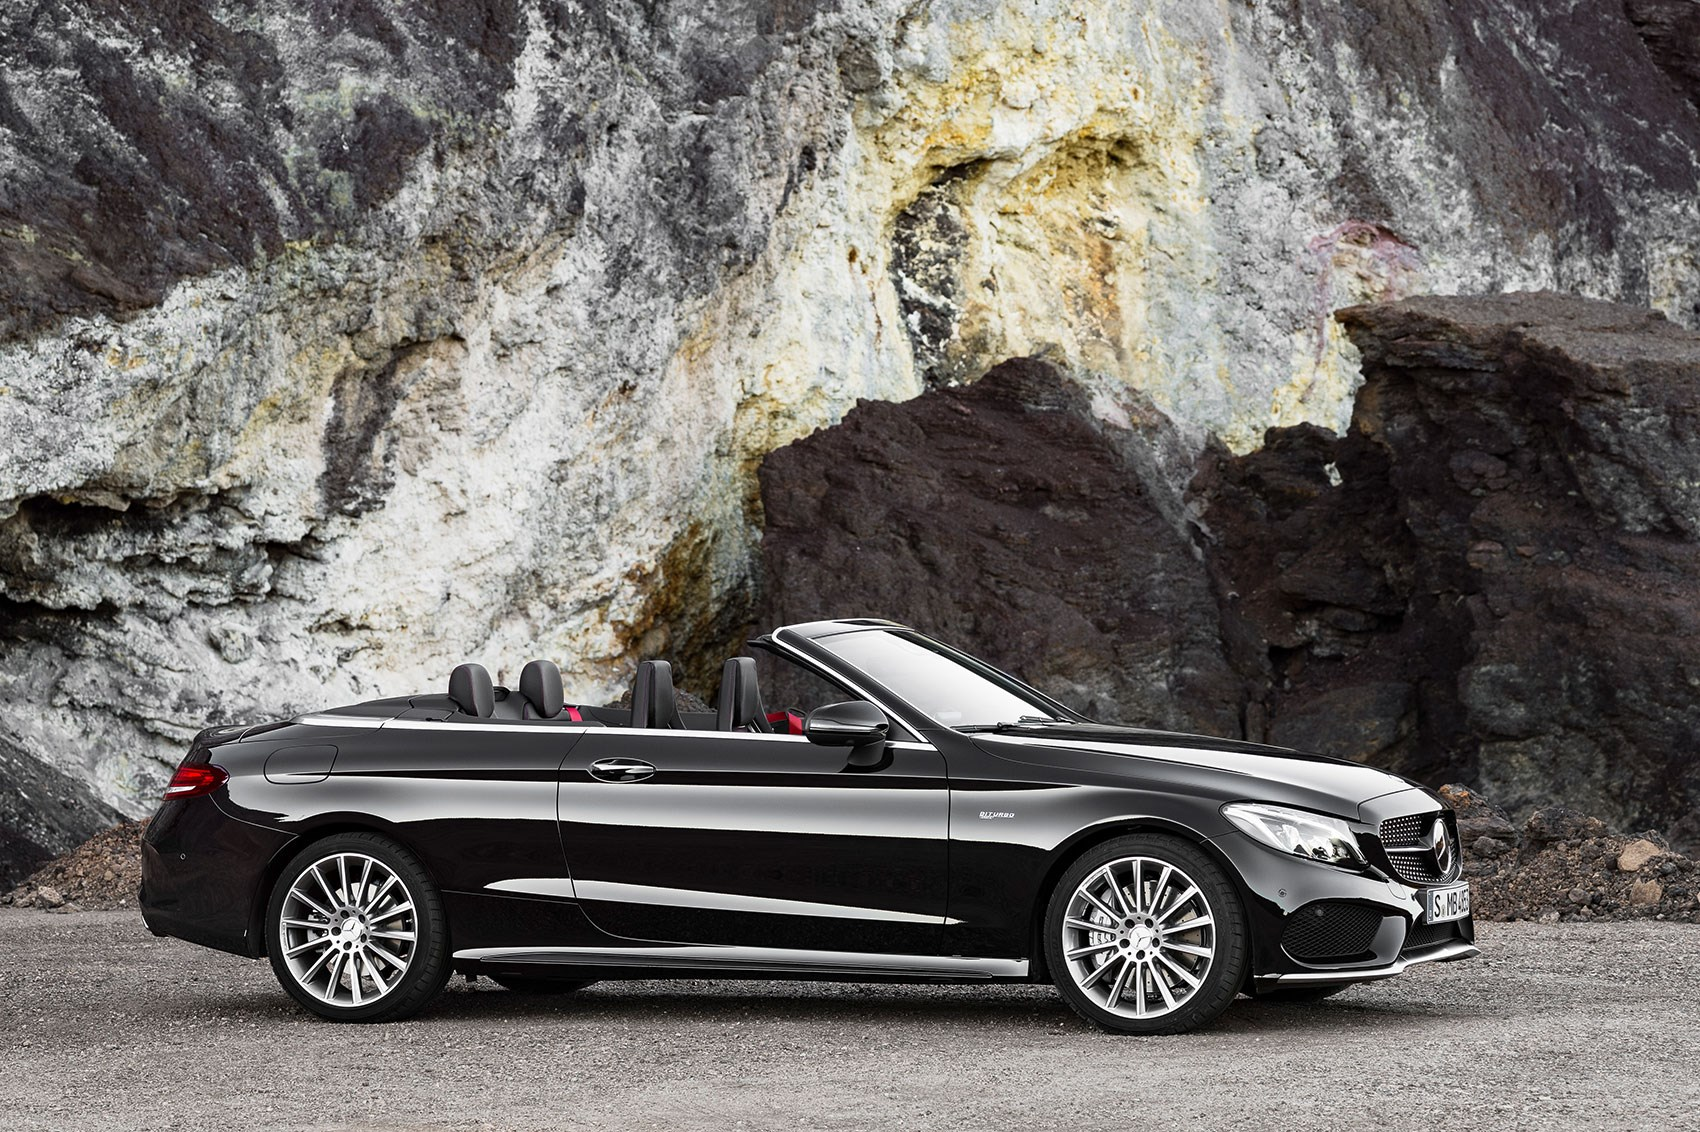 designer fabric new 2016 mercedes c class cabriolet. Black Bedroom Furniture Sets. Home Design Ideas